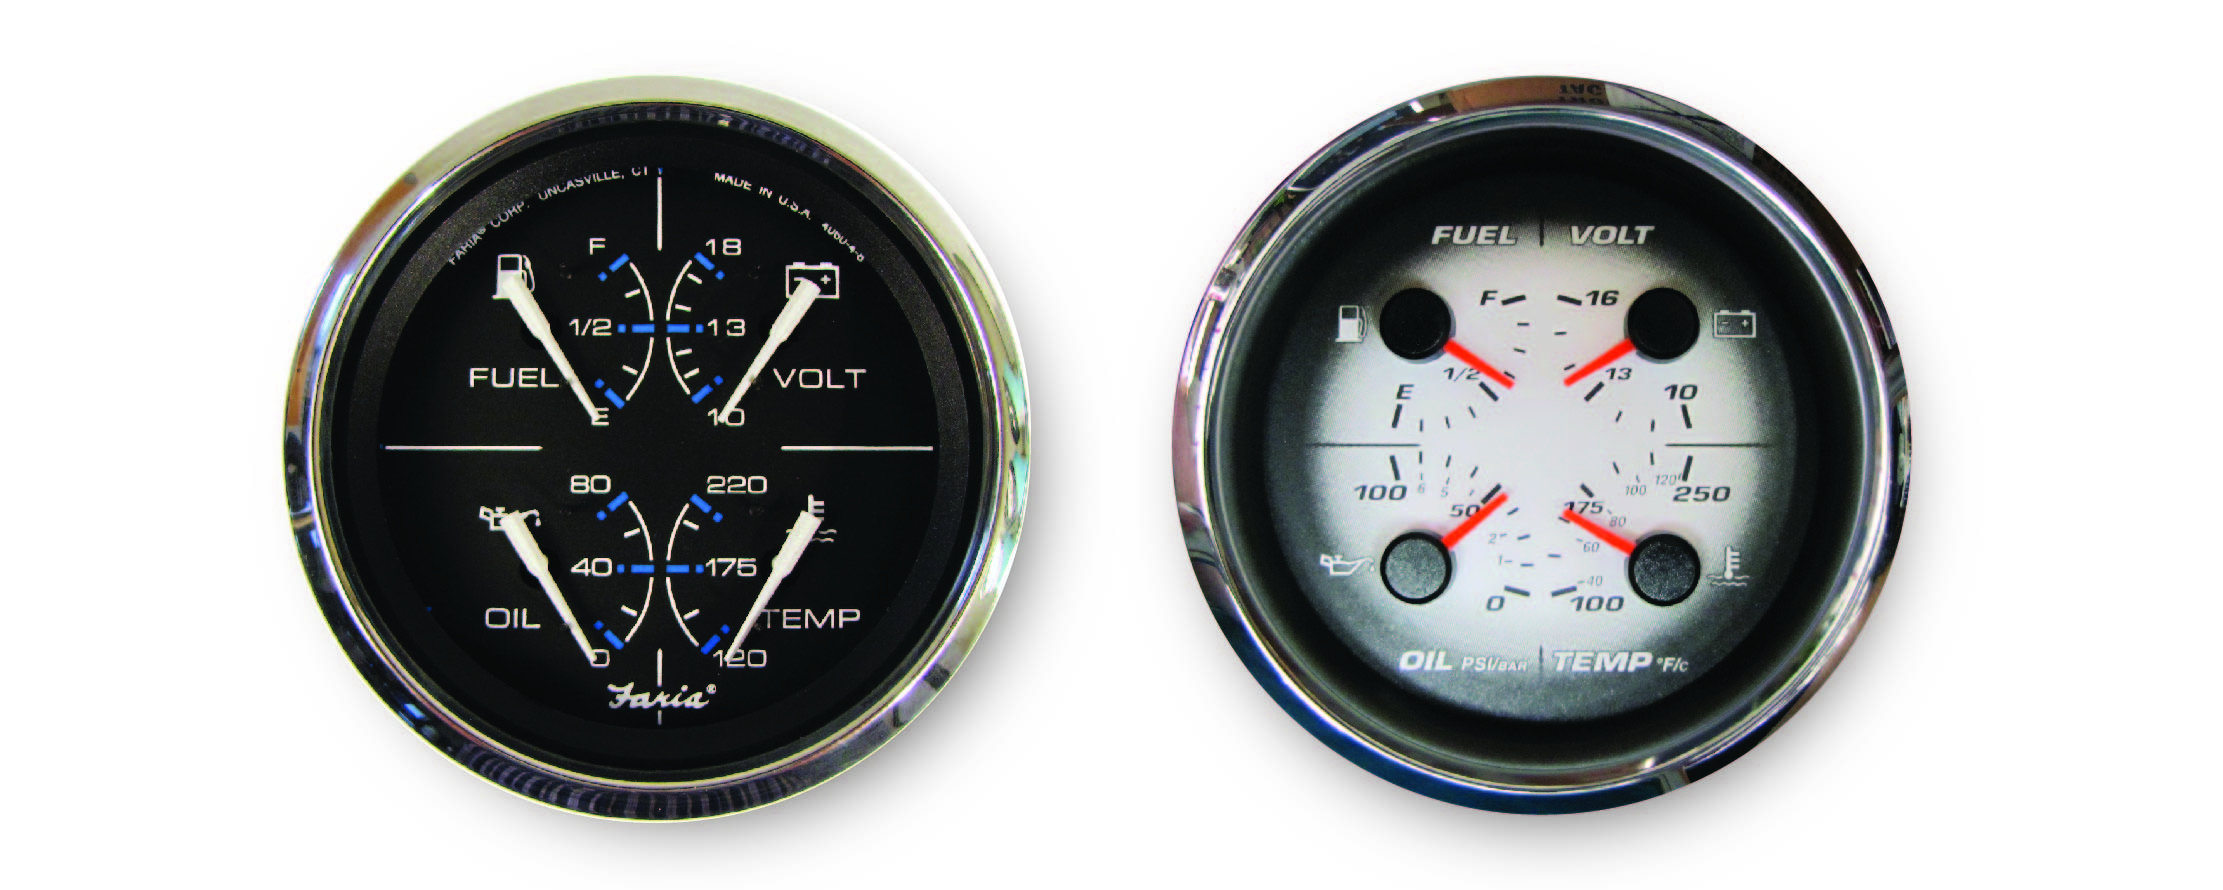 Multifunction gauges